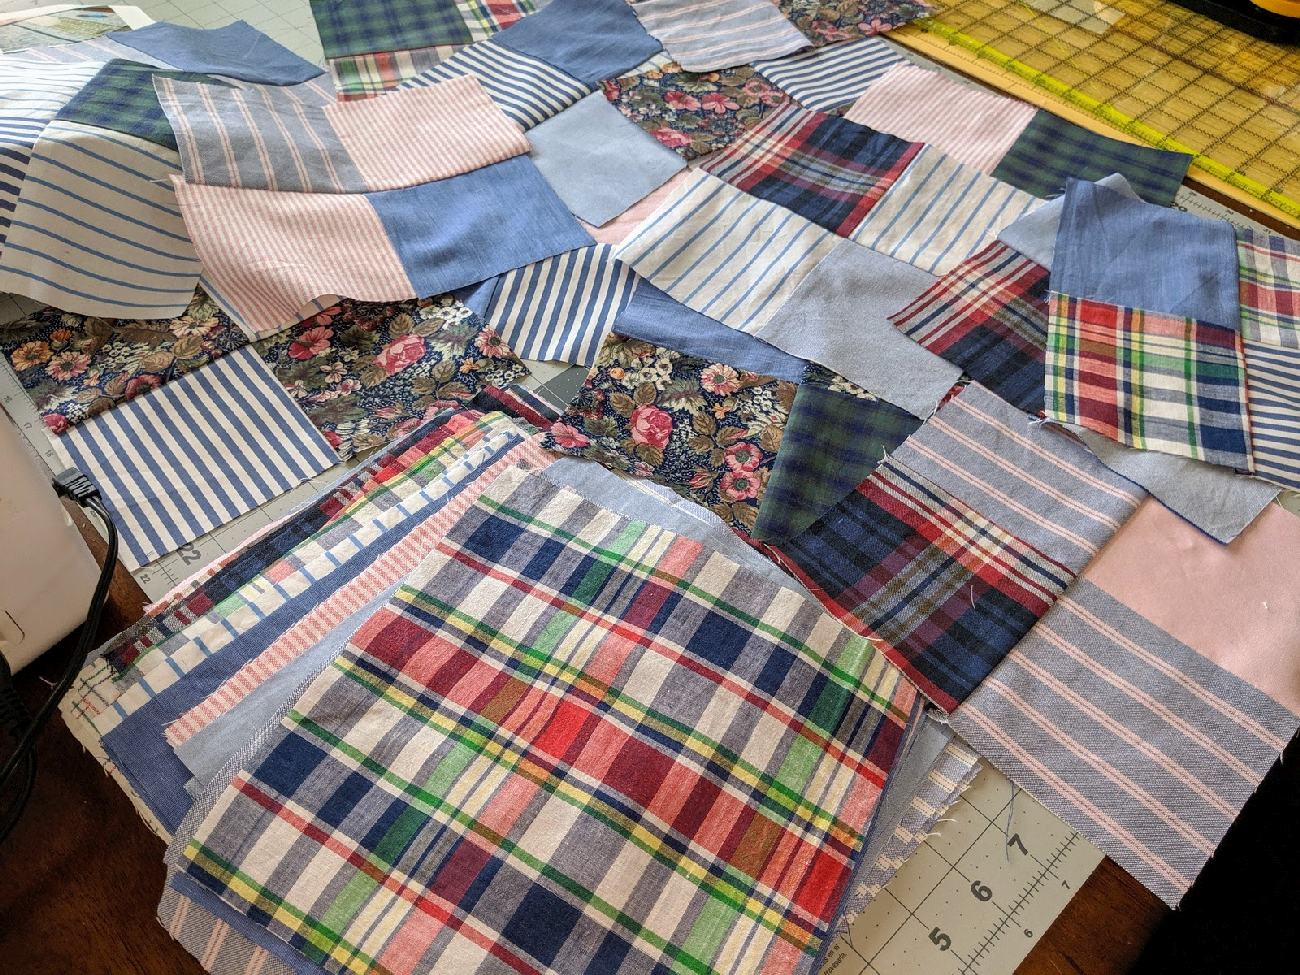 152: recycled quilt progress